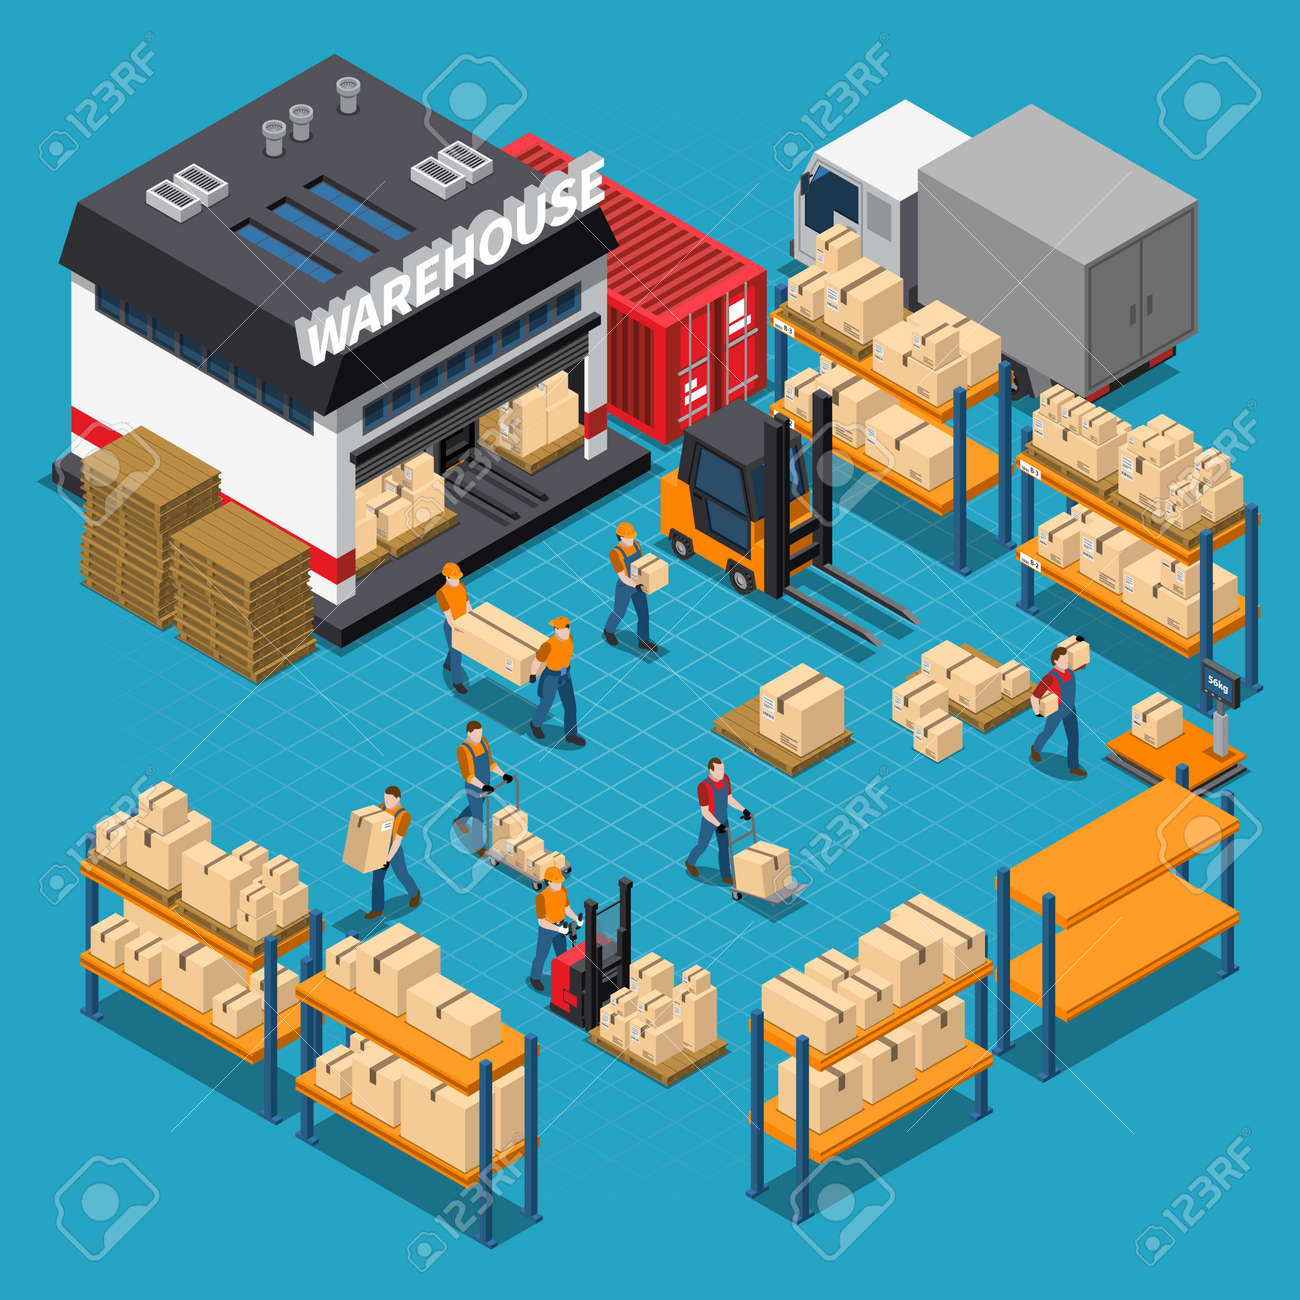 Warehouse isometric composition with employees and storage building shelves and boxes transportation on blue background vector illustration - 165234450